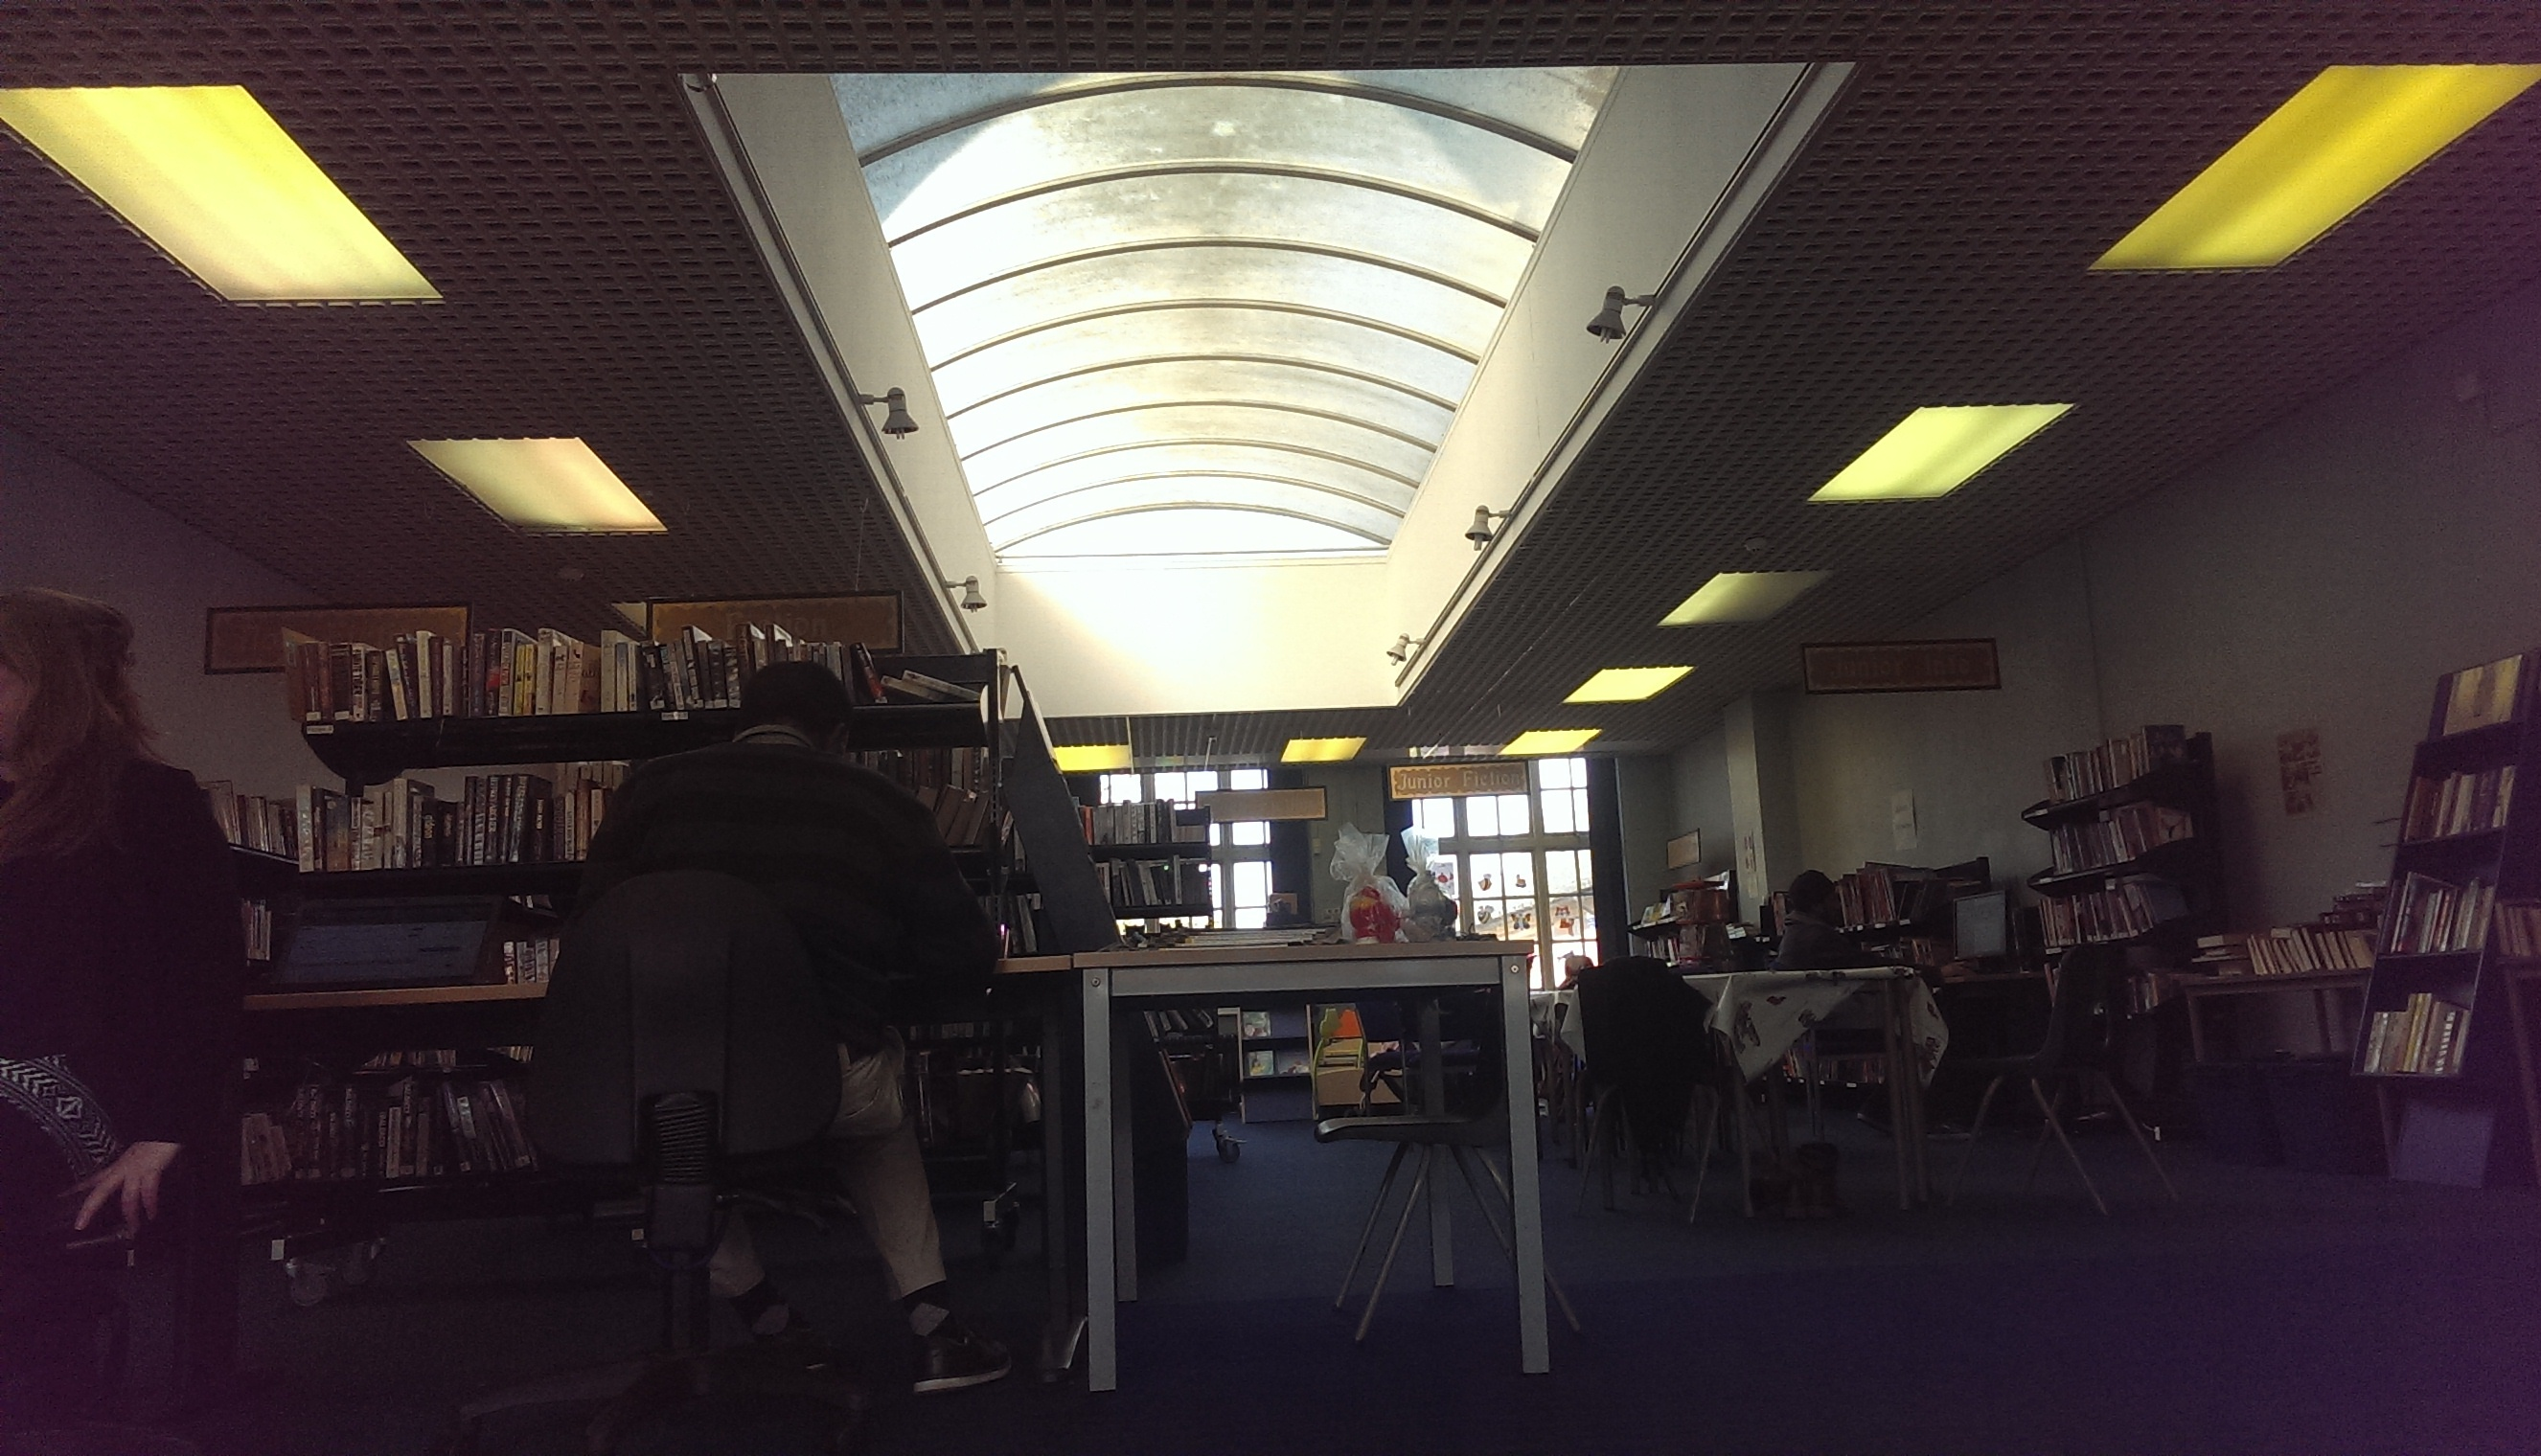 Inside Maindee Library